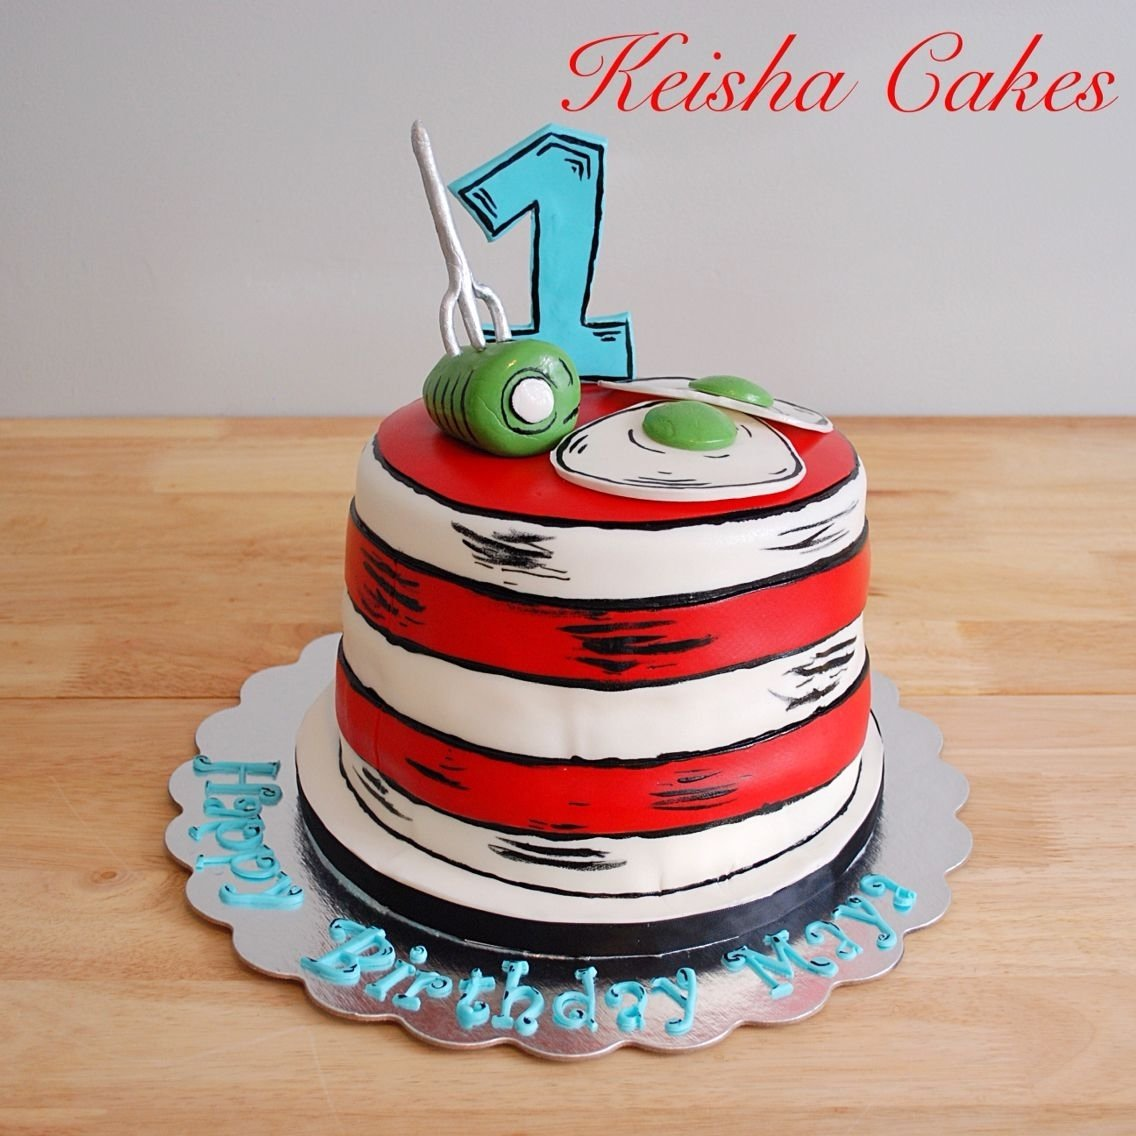 10 Beautiful Dr Seuss First Birthday Party Ideas dr seuss cat in the hat birthday cake green eggs and ham on top of